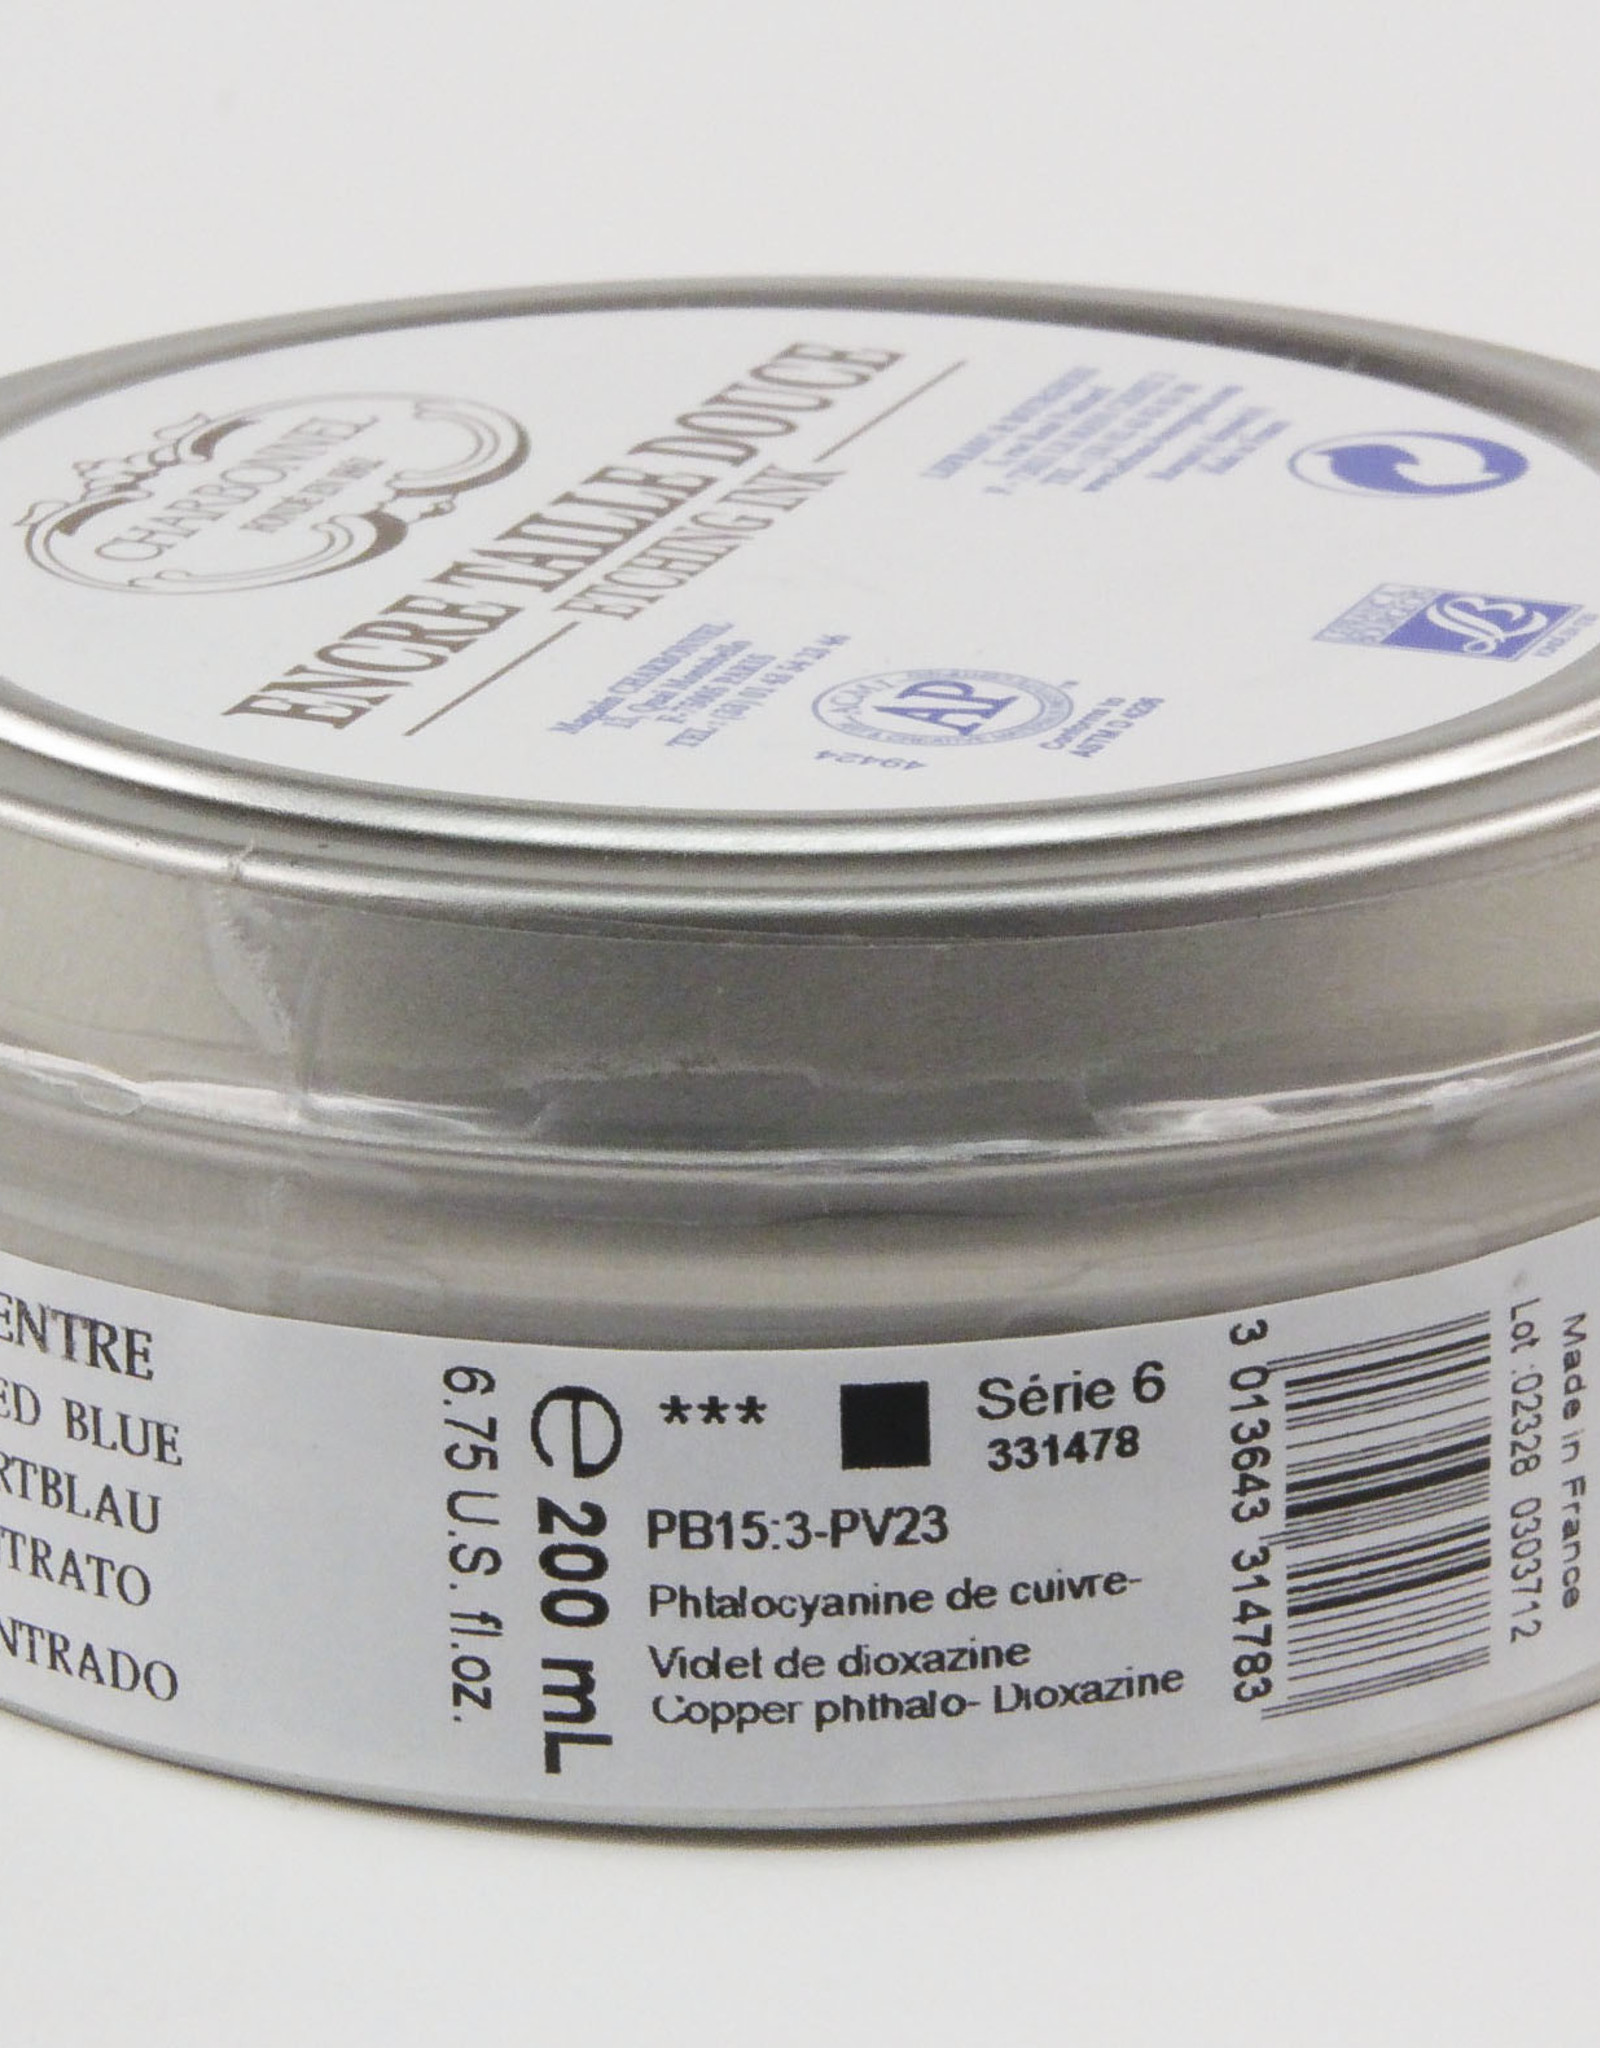 Charbonnel, Etching Ink, Concentrated Blue, Series 6, 200ml, Can